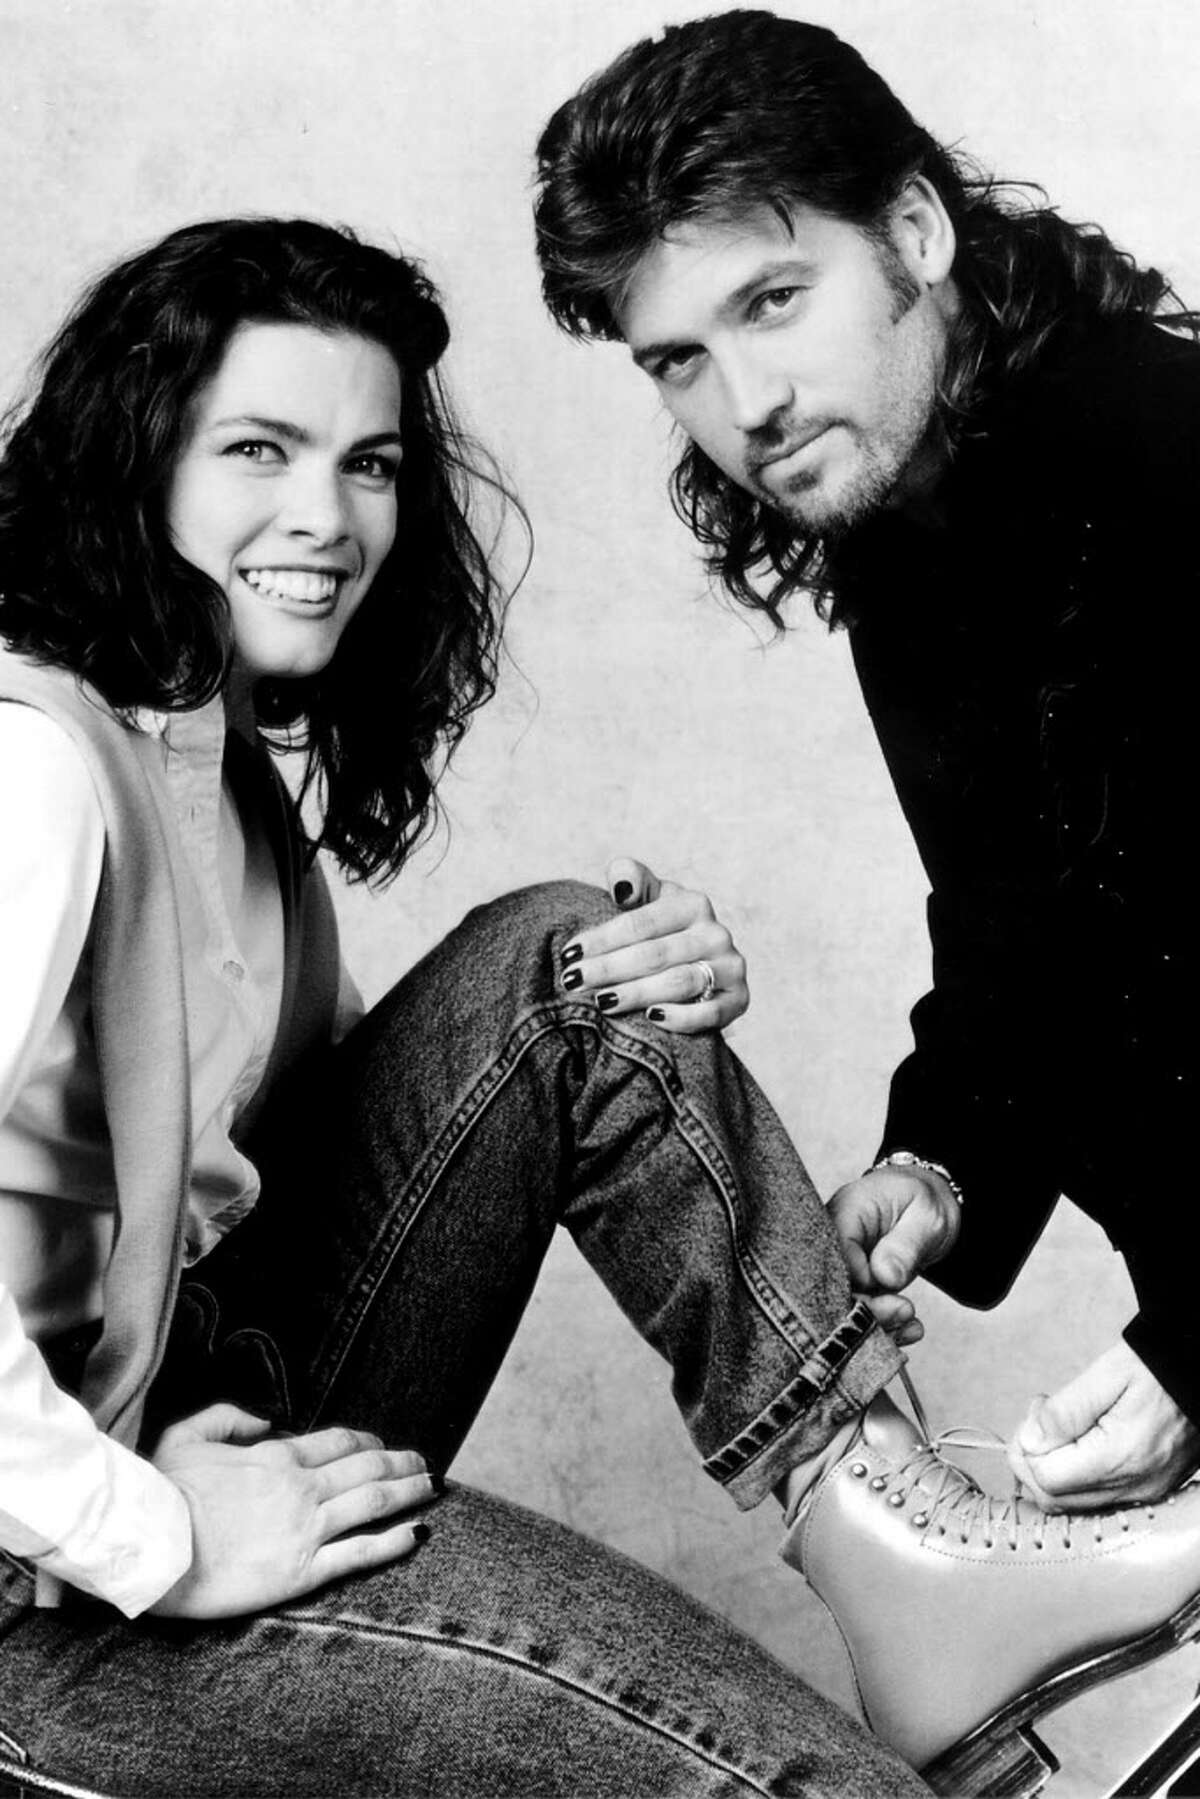 In 1999, Nancy Kerrigan skated to the music of Billy Ray Cyrus and others on the new TNN special